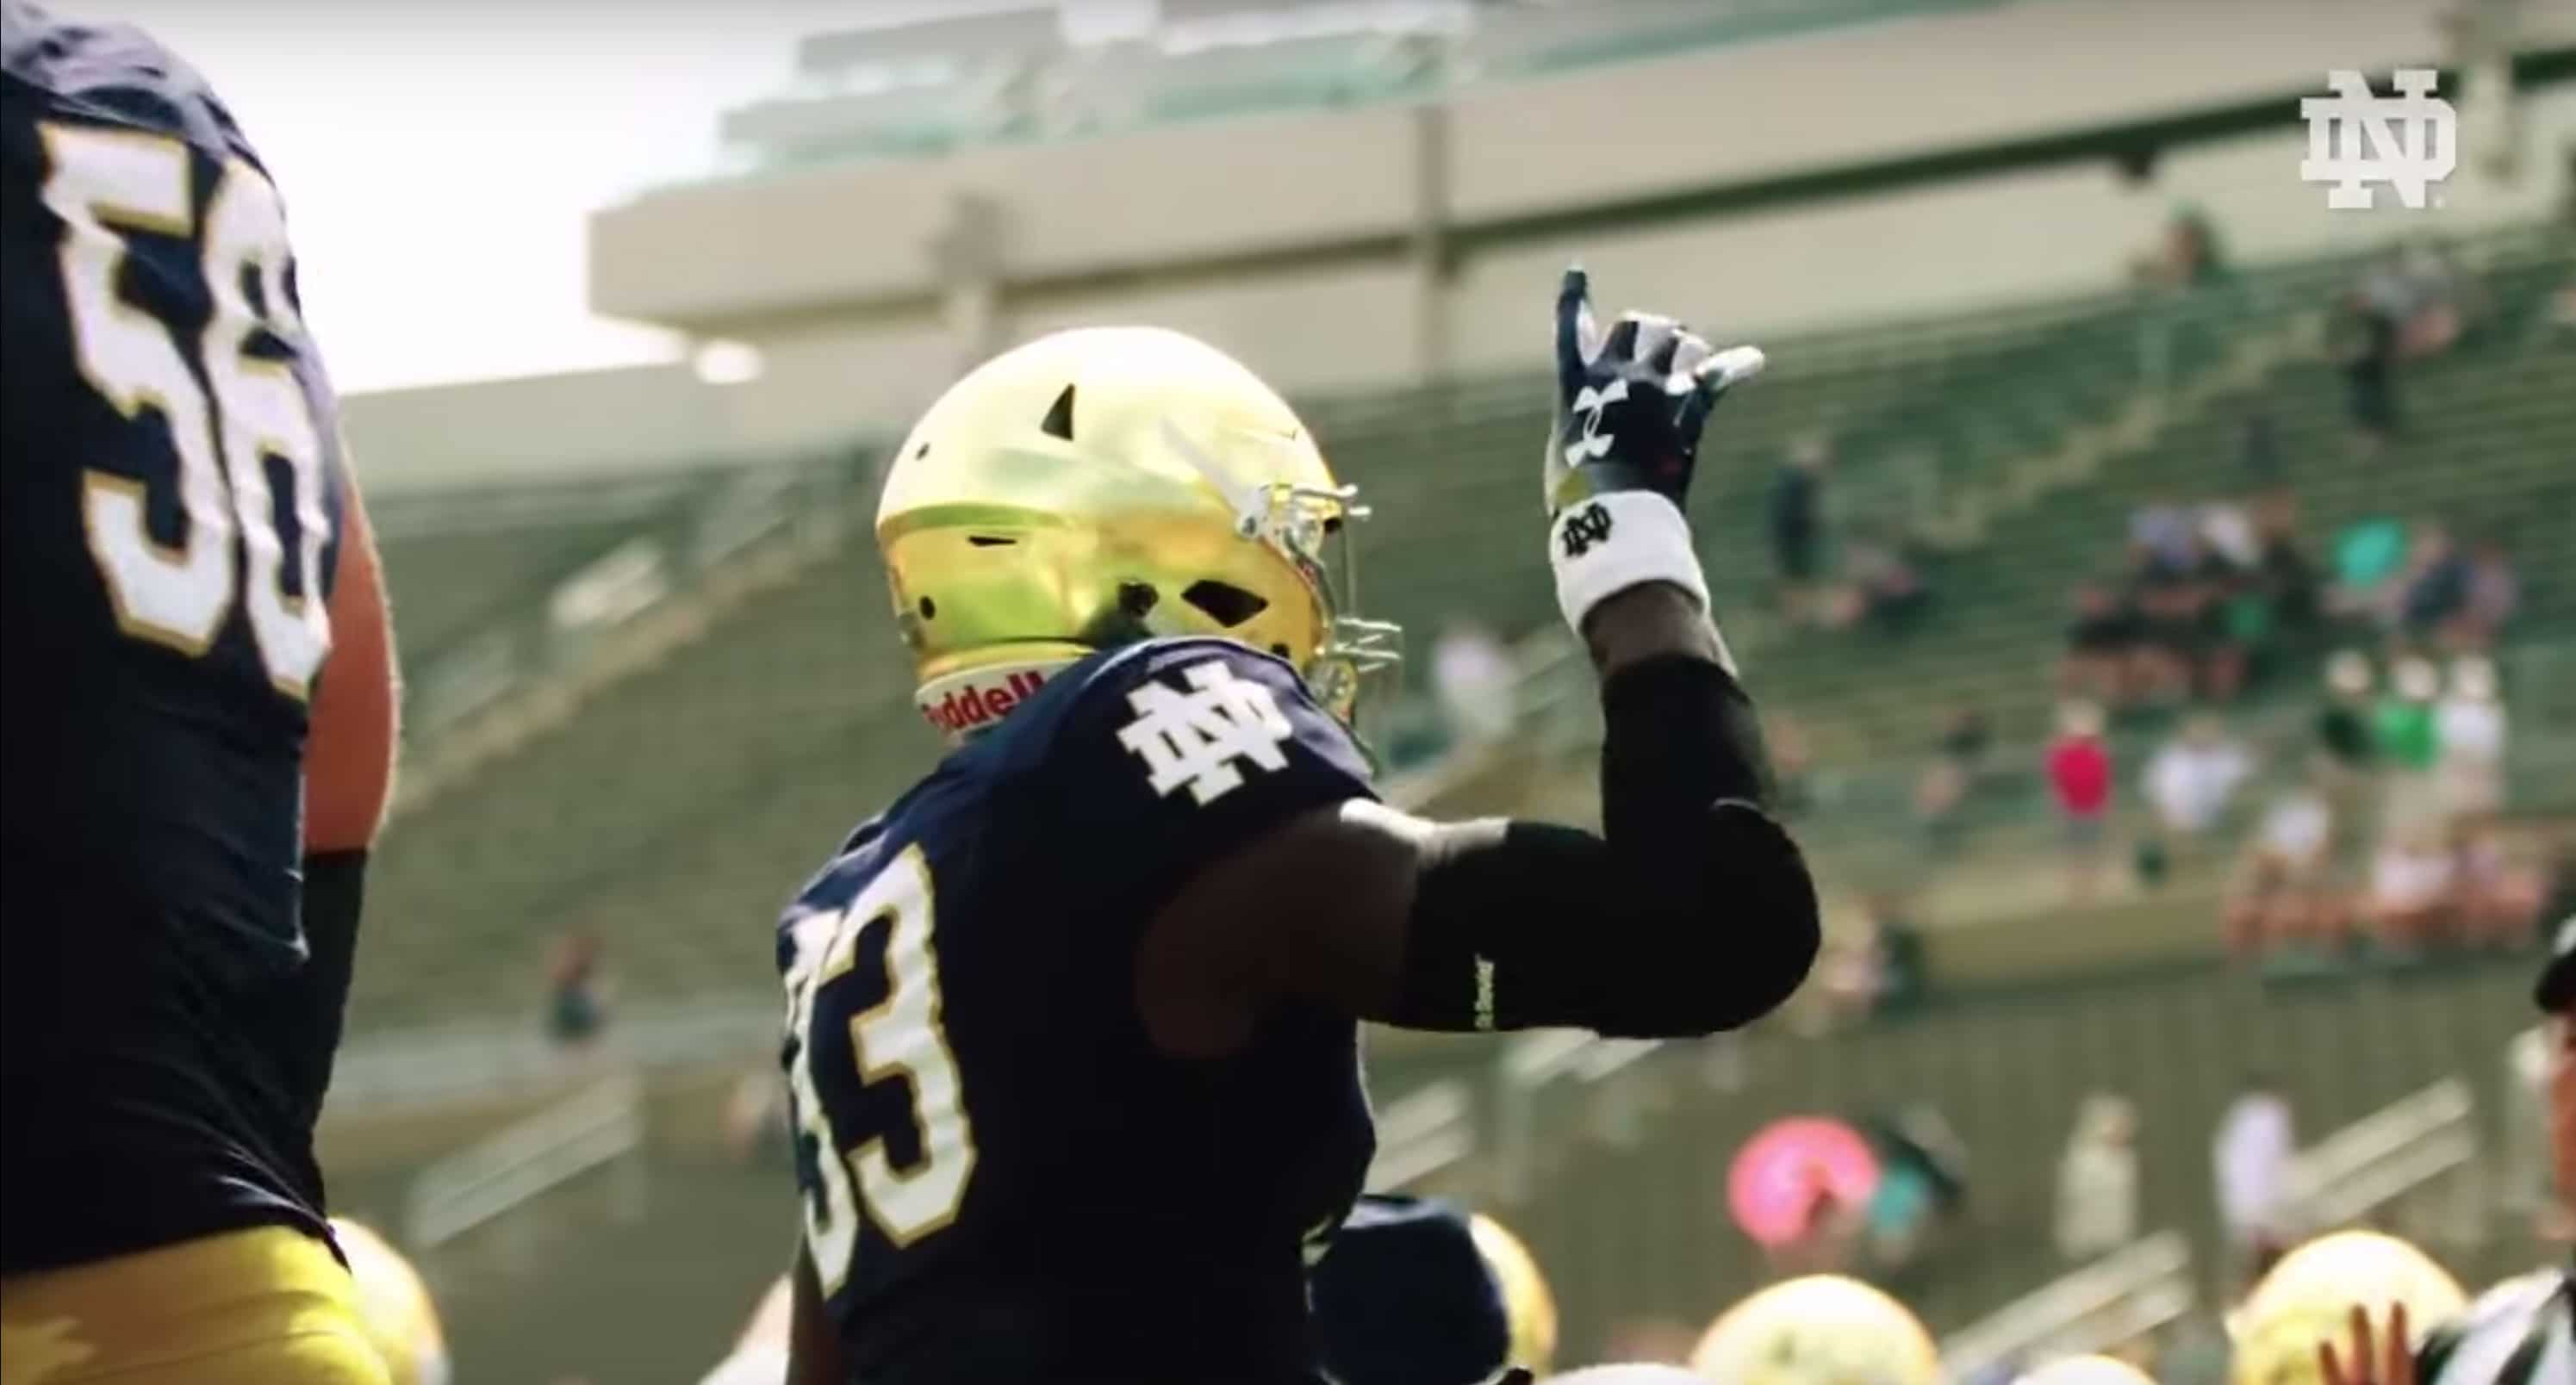 Notre-dame-new-gold-highlights